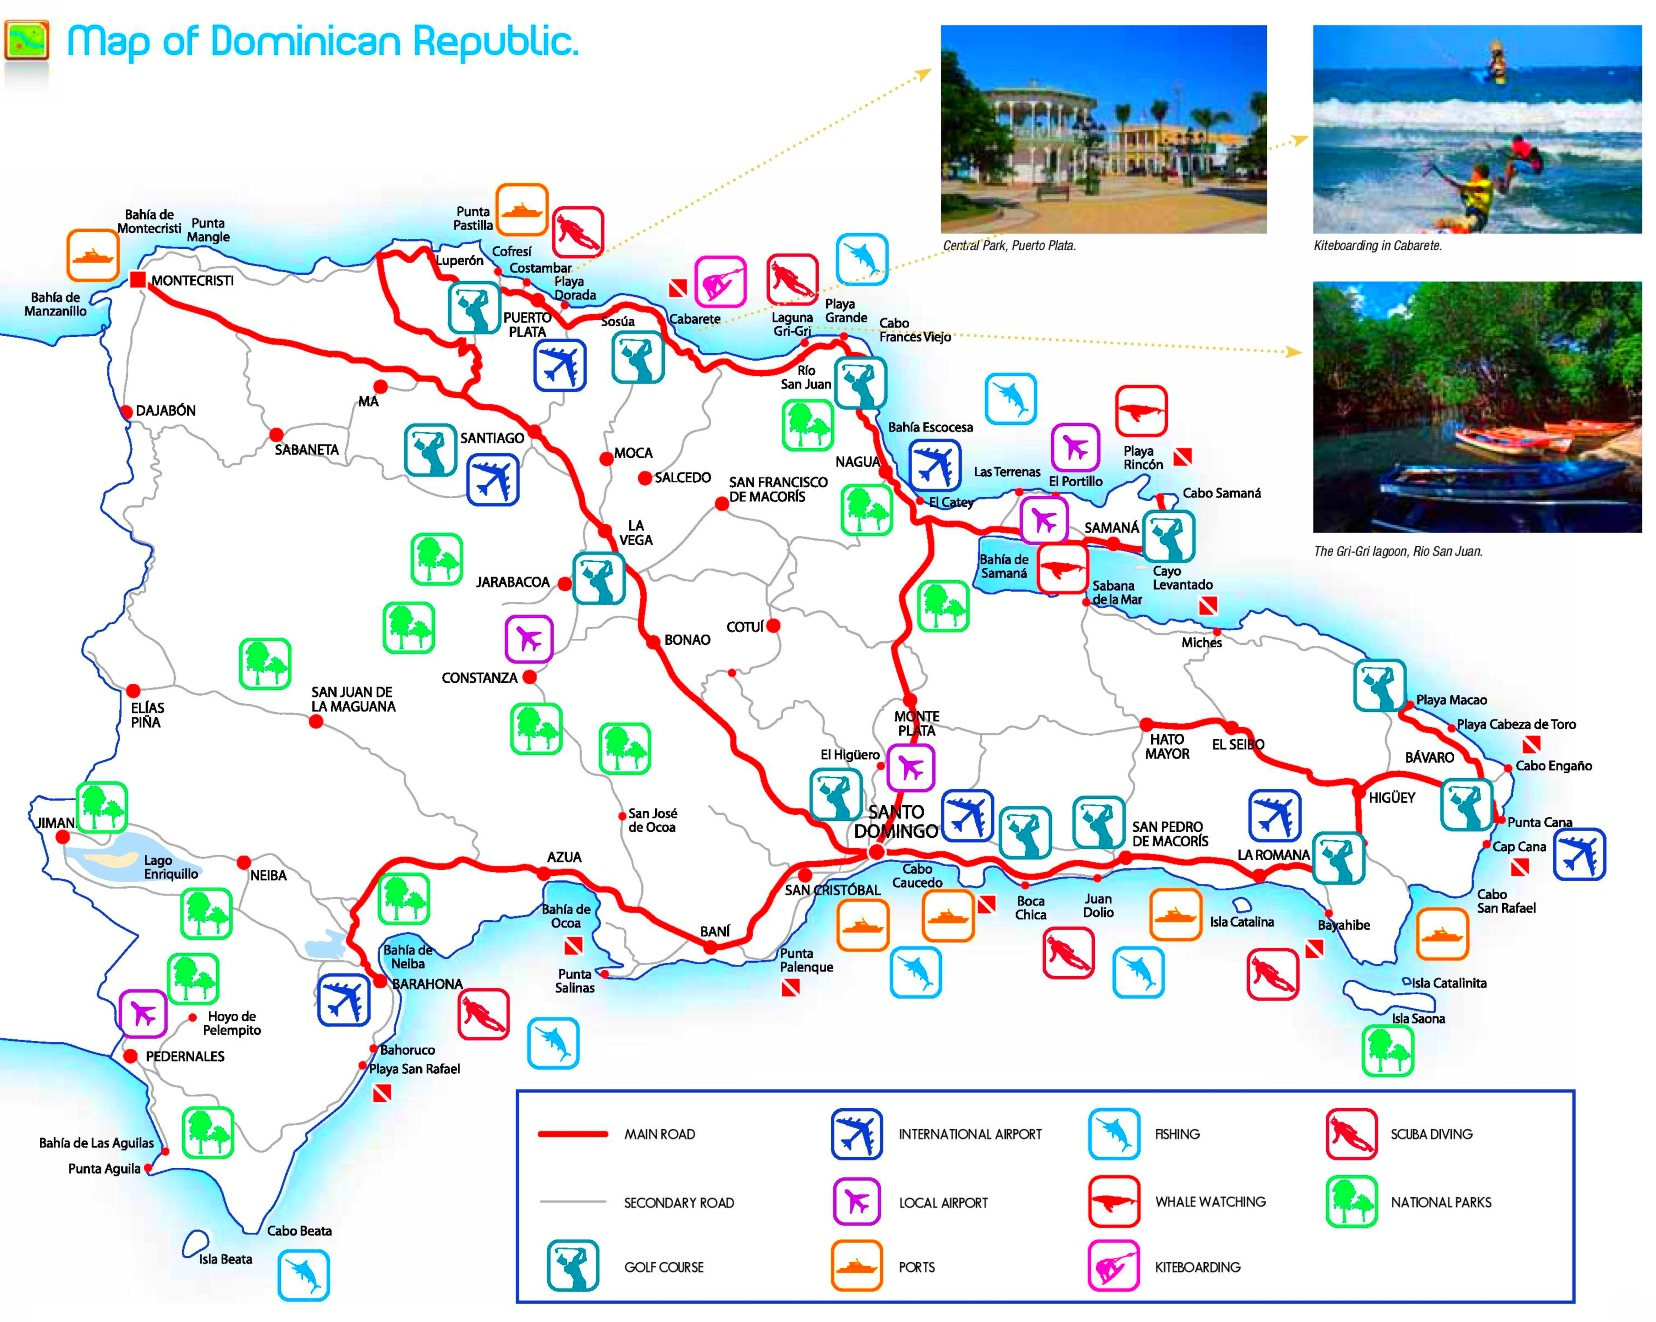 Dominican Republic tourist attractions map